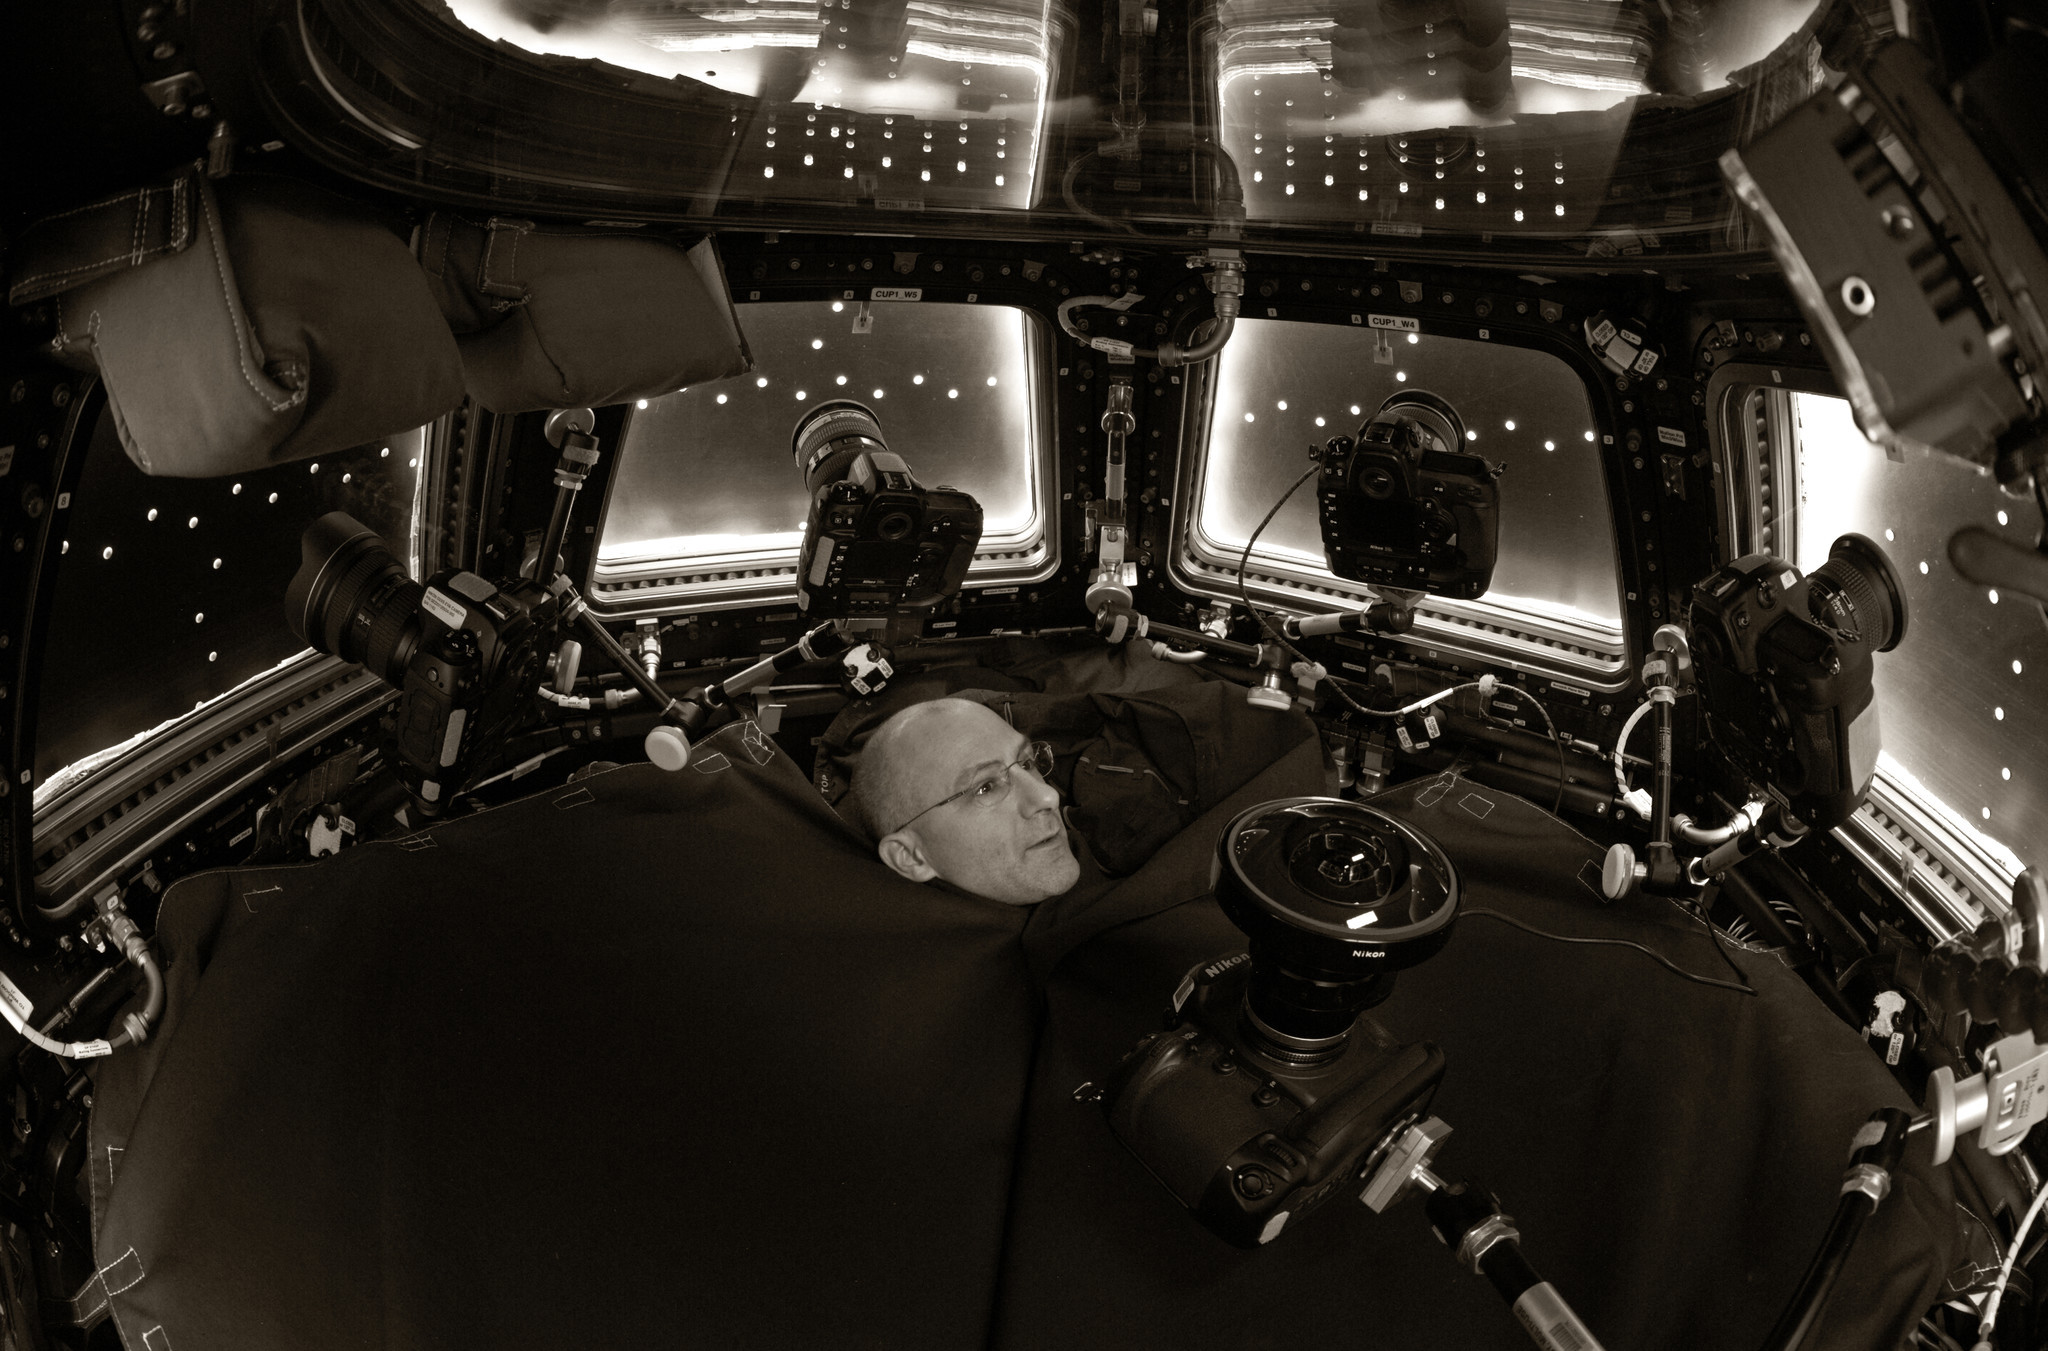 A Pettit self-portrait in the cupola of the International Space Station.